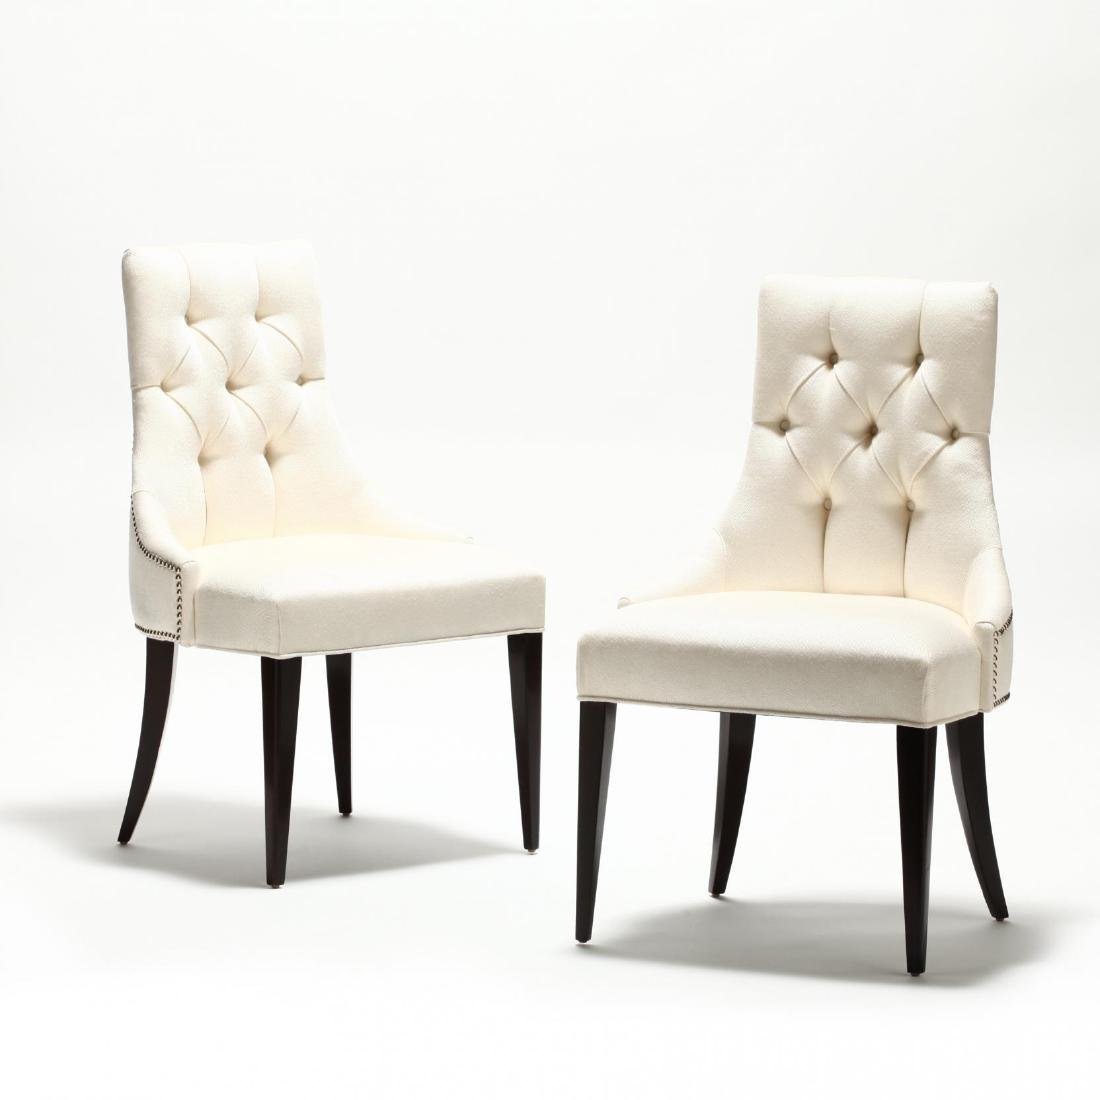 Baker, Thomas Pheasant Collection Pair of Side Chairs